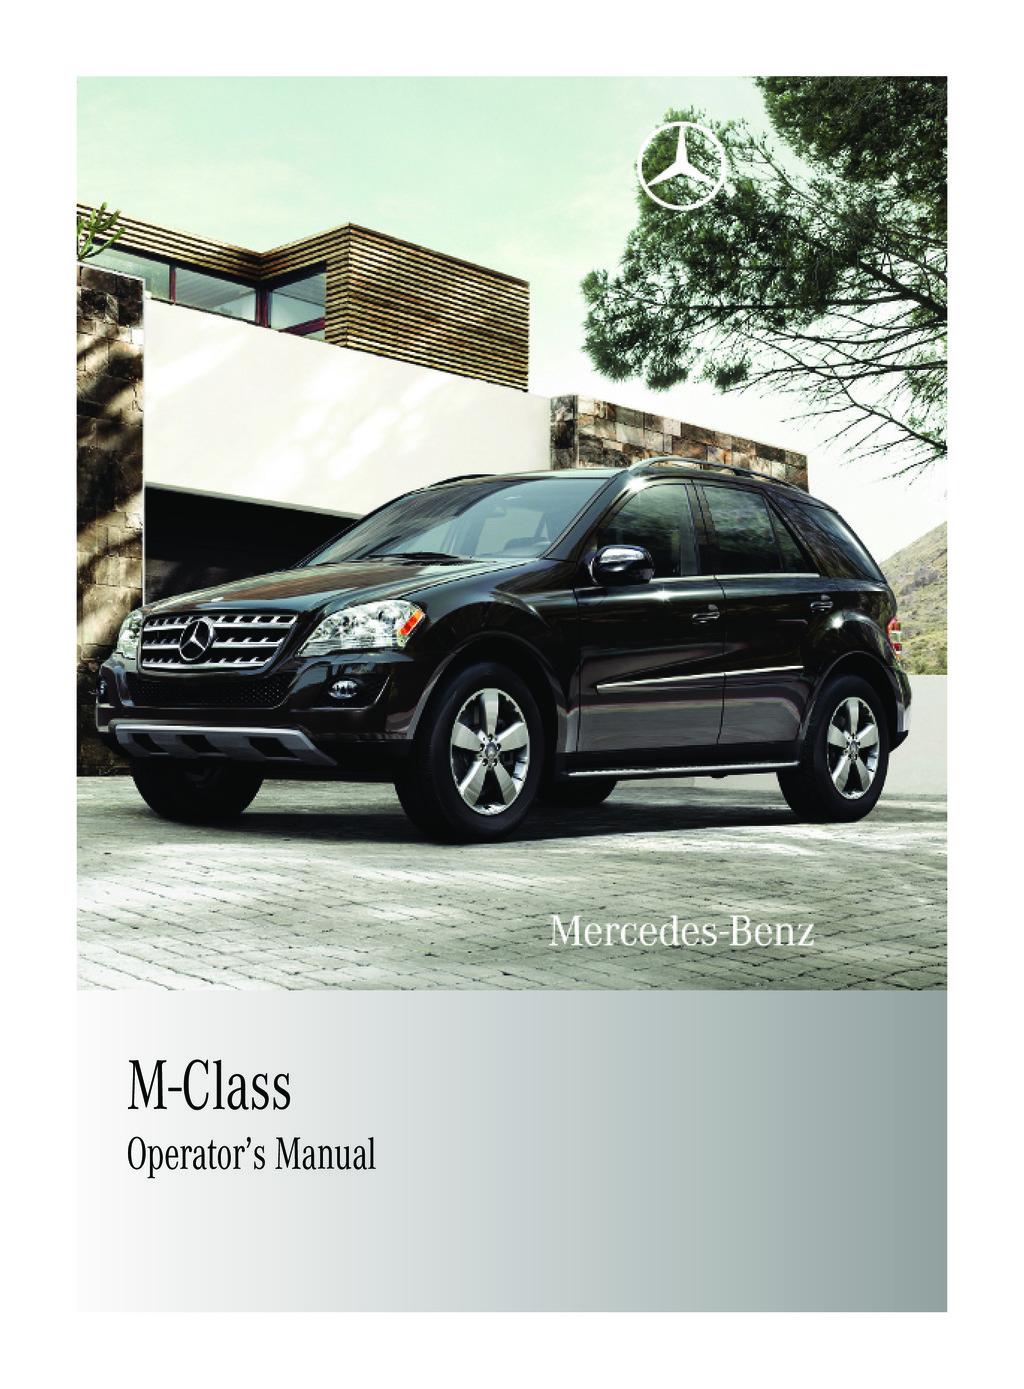 2010 Mercedes-Benz M Class owners manual